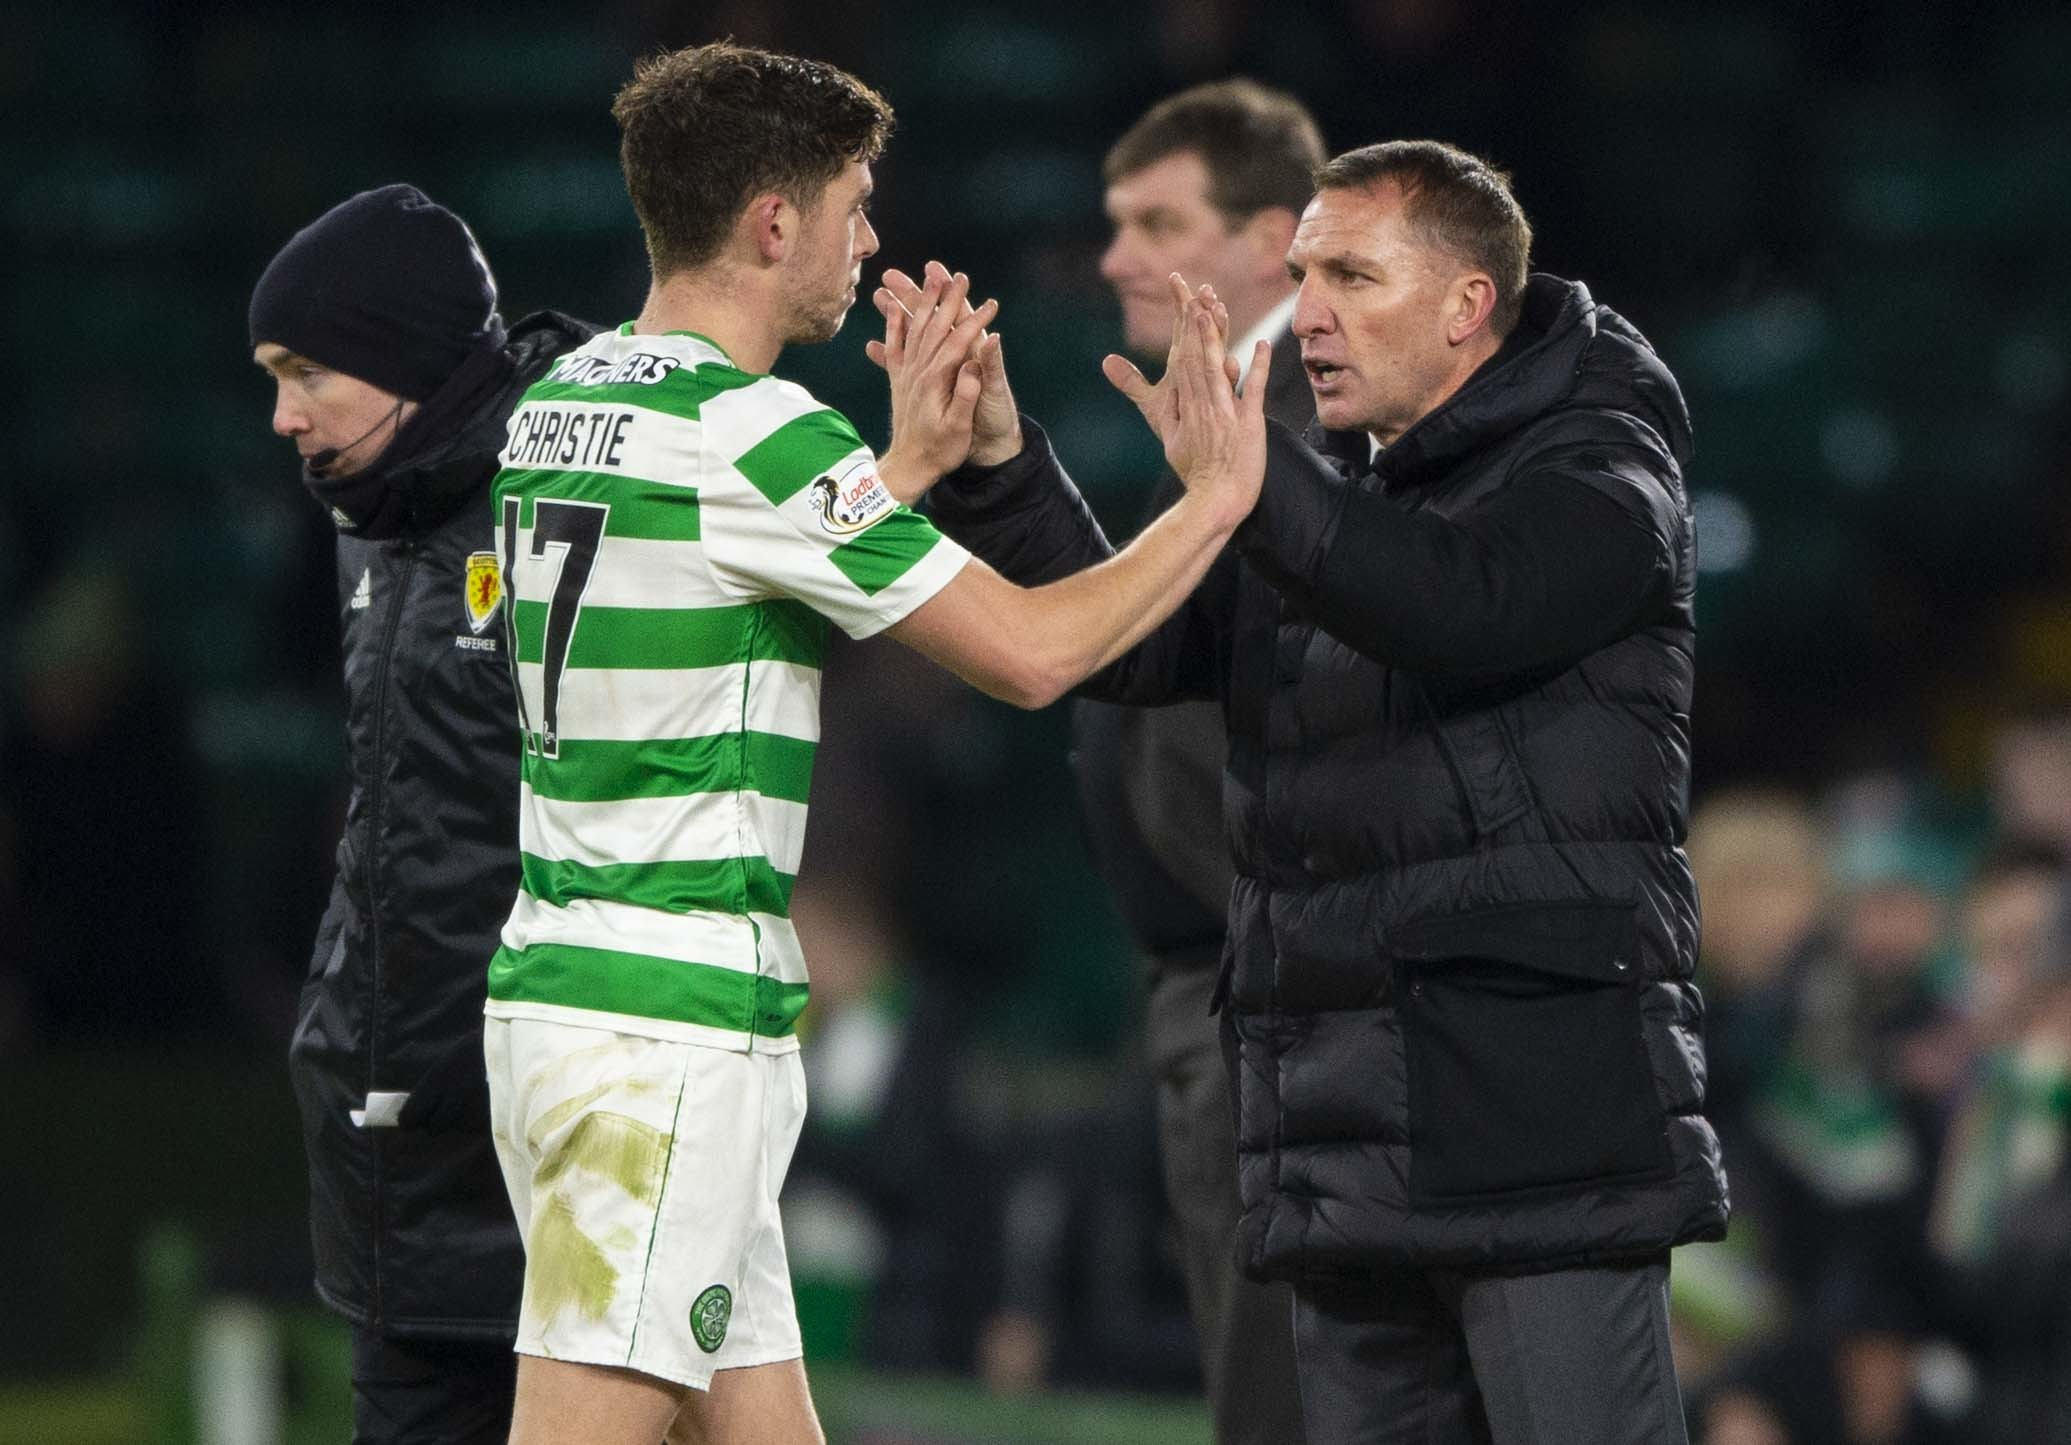 30/01/19 LADBROKES PREMIERSHIP.CELTIC v ST JOHNSTONE (2-0).CELTIC PARK - GLASGOW.Celtic's Ryan Christie (left) with manager Brendan Rodgers.